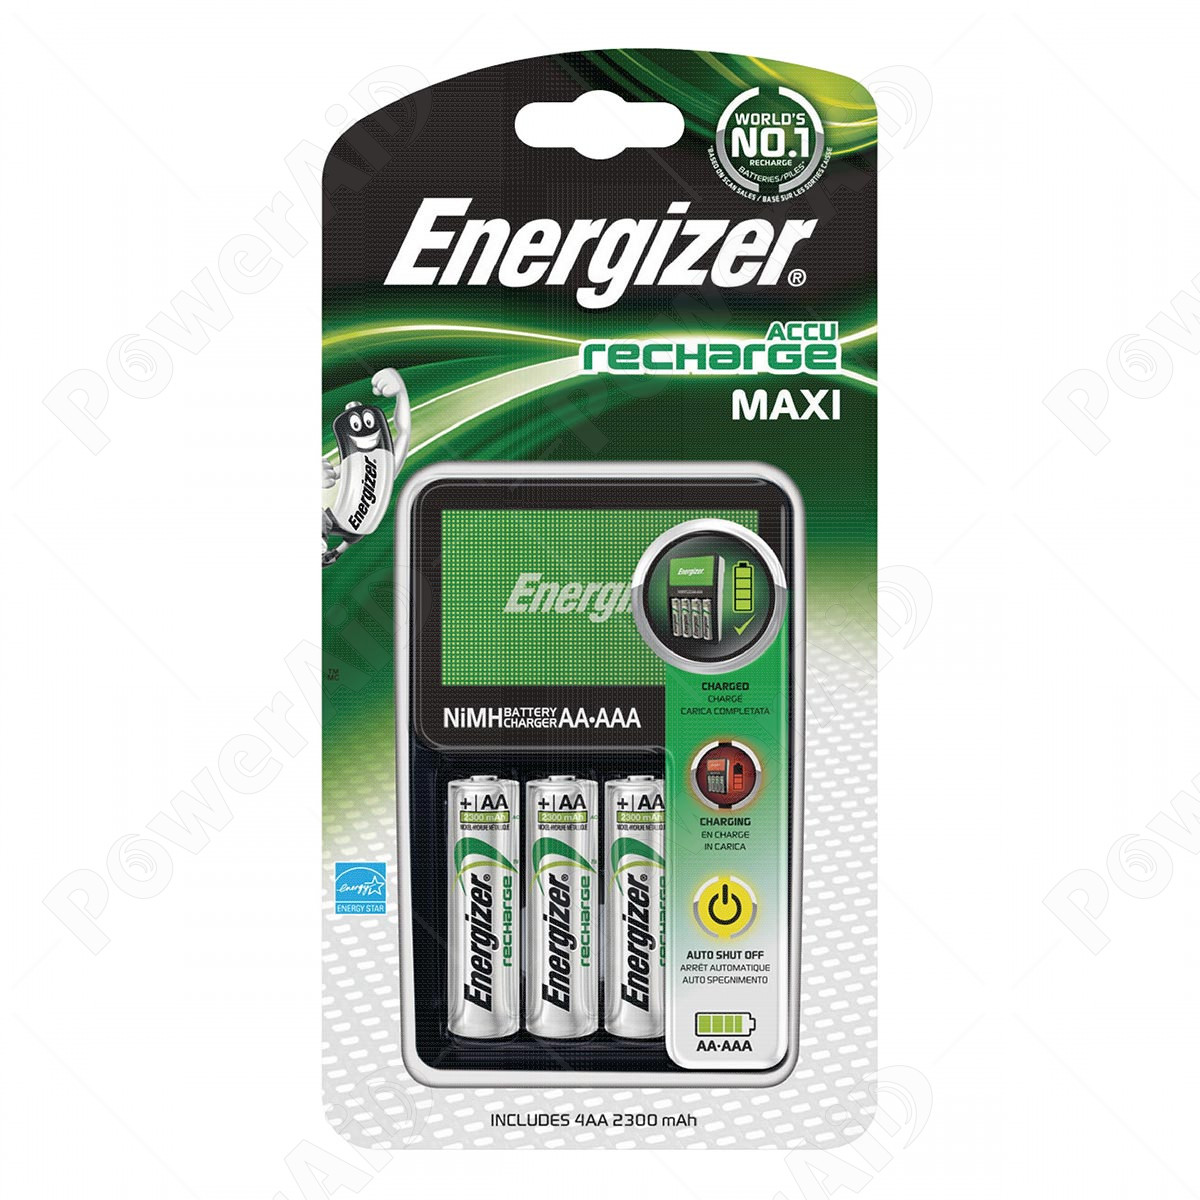 Energizer - Caricabatterie Recharge MAXI con 4 Batterie AA 230 mAh